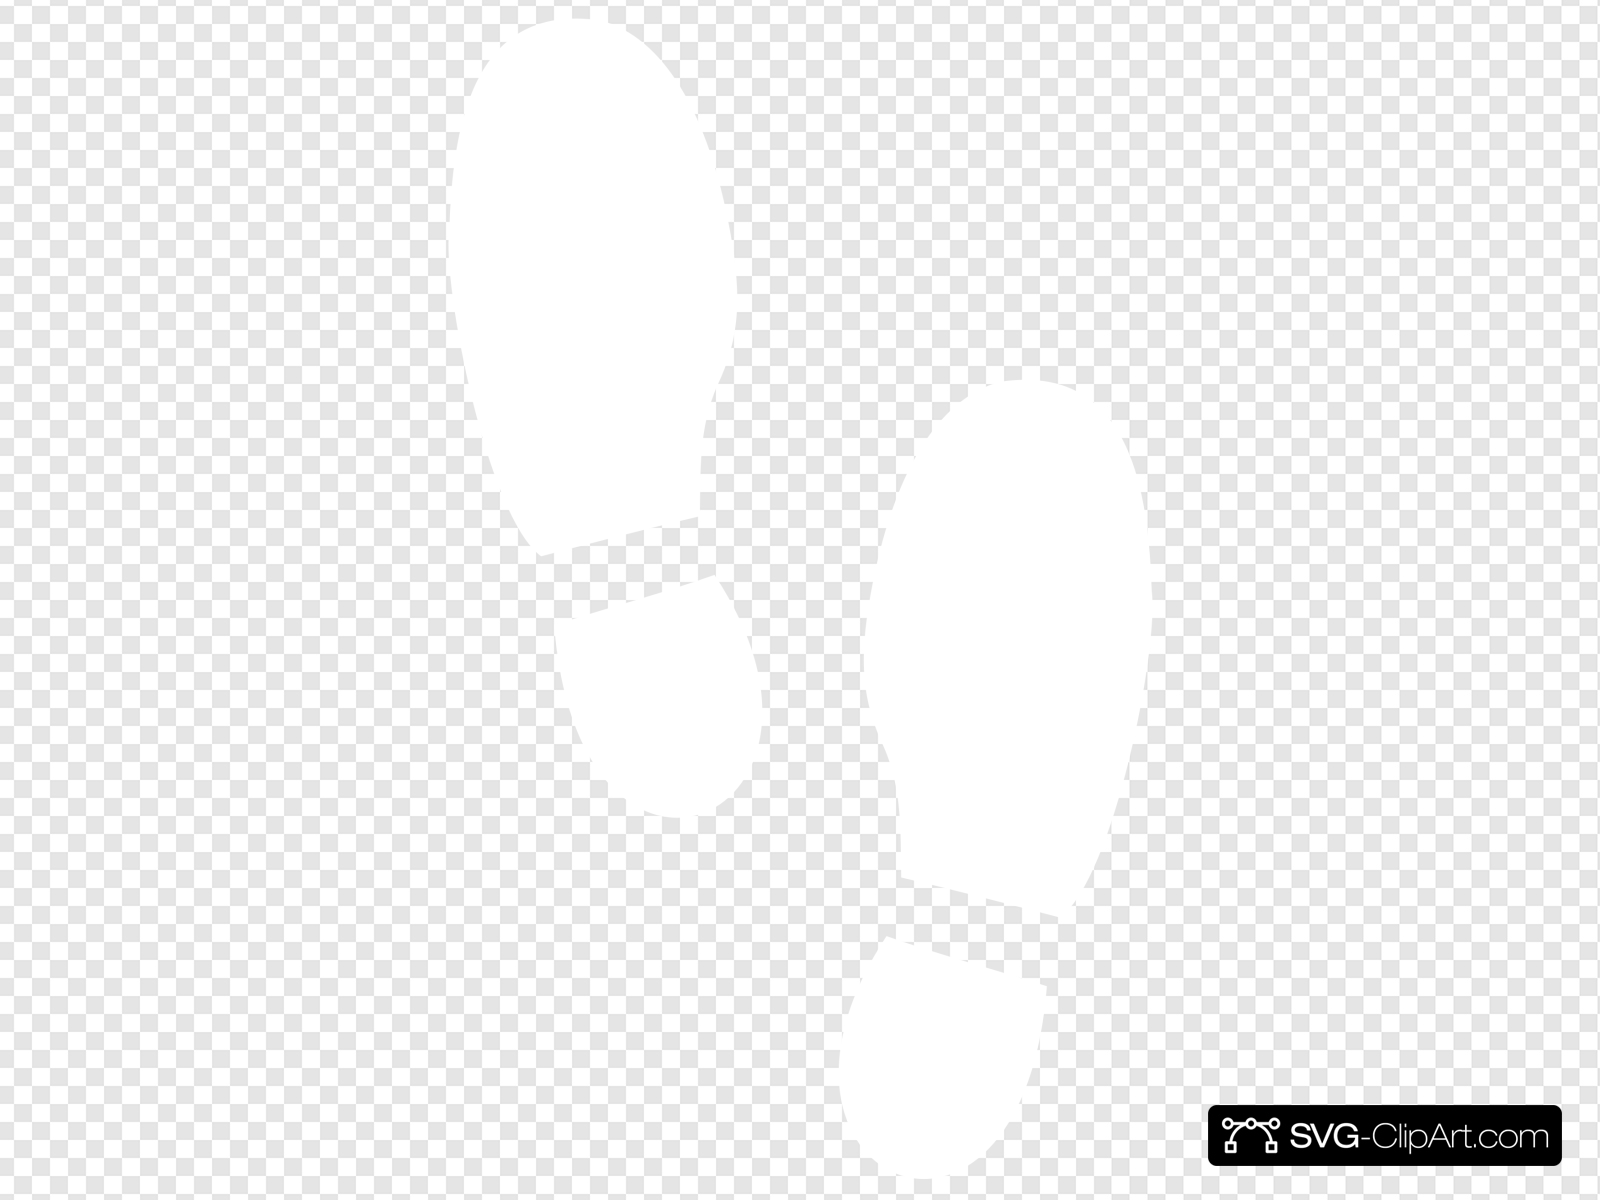 Shoe Print White Clip art, Icon and SVG.